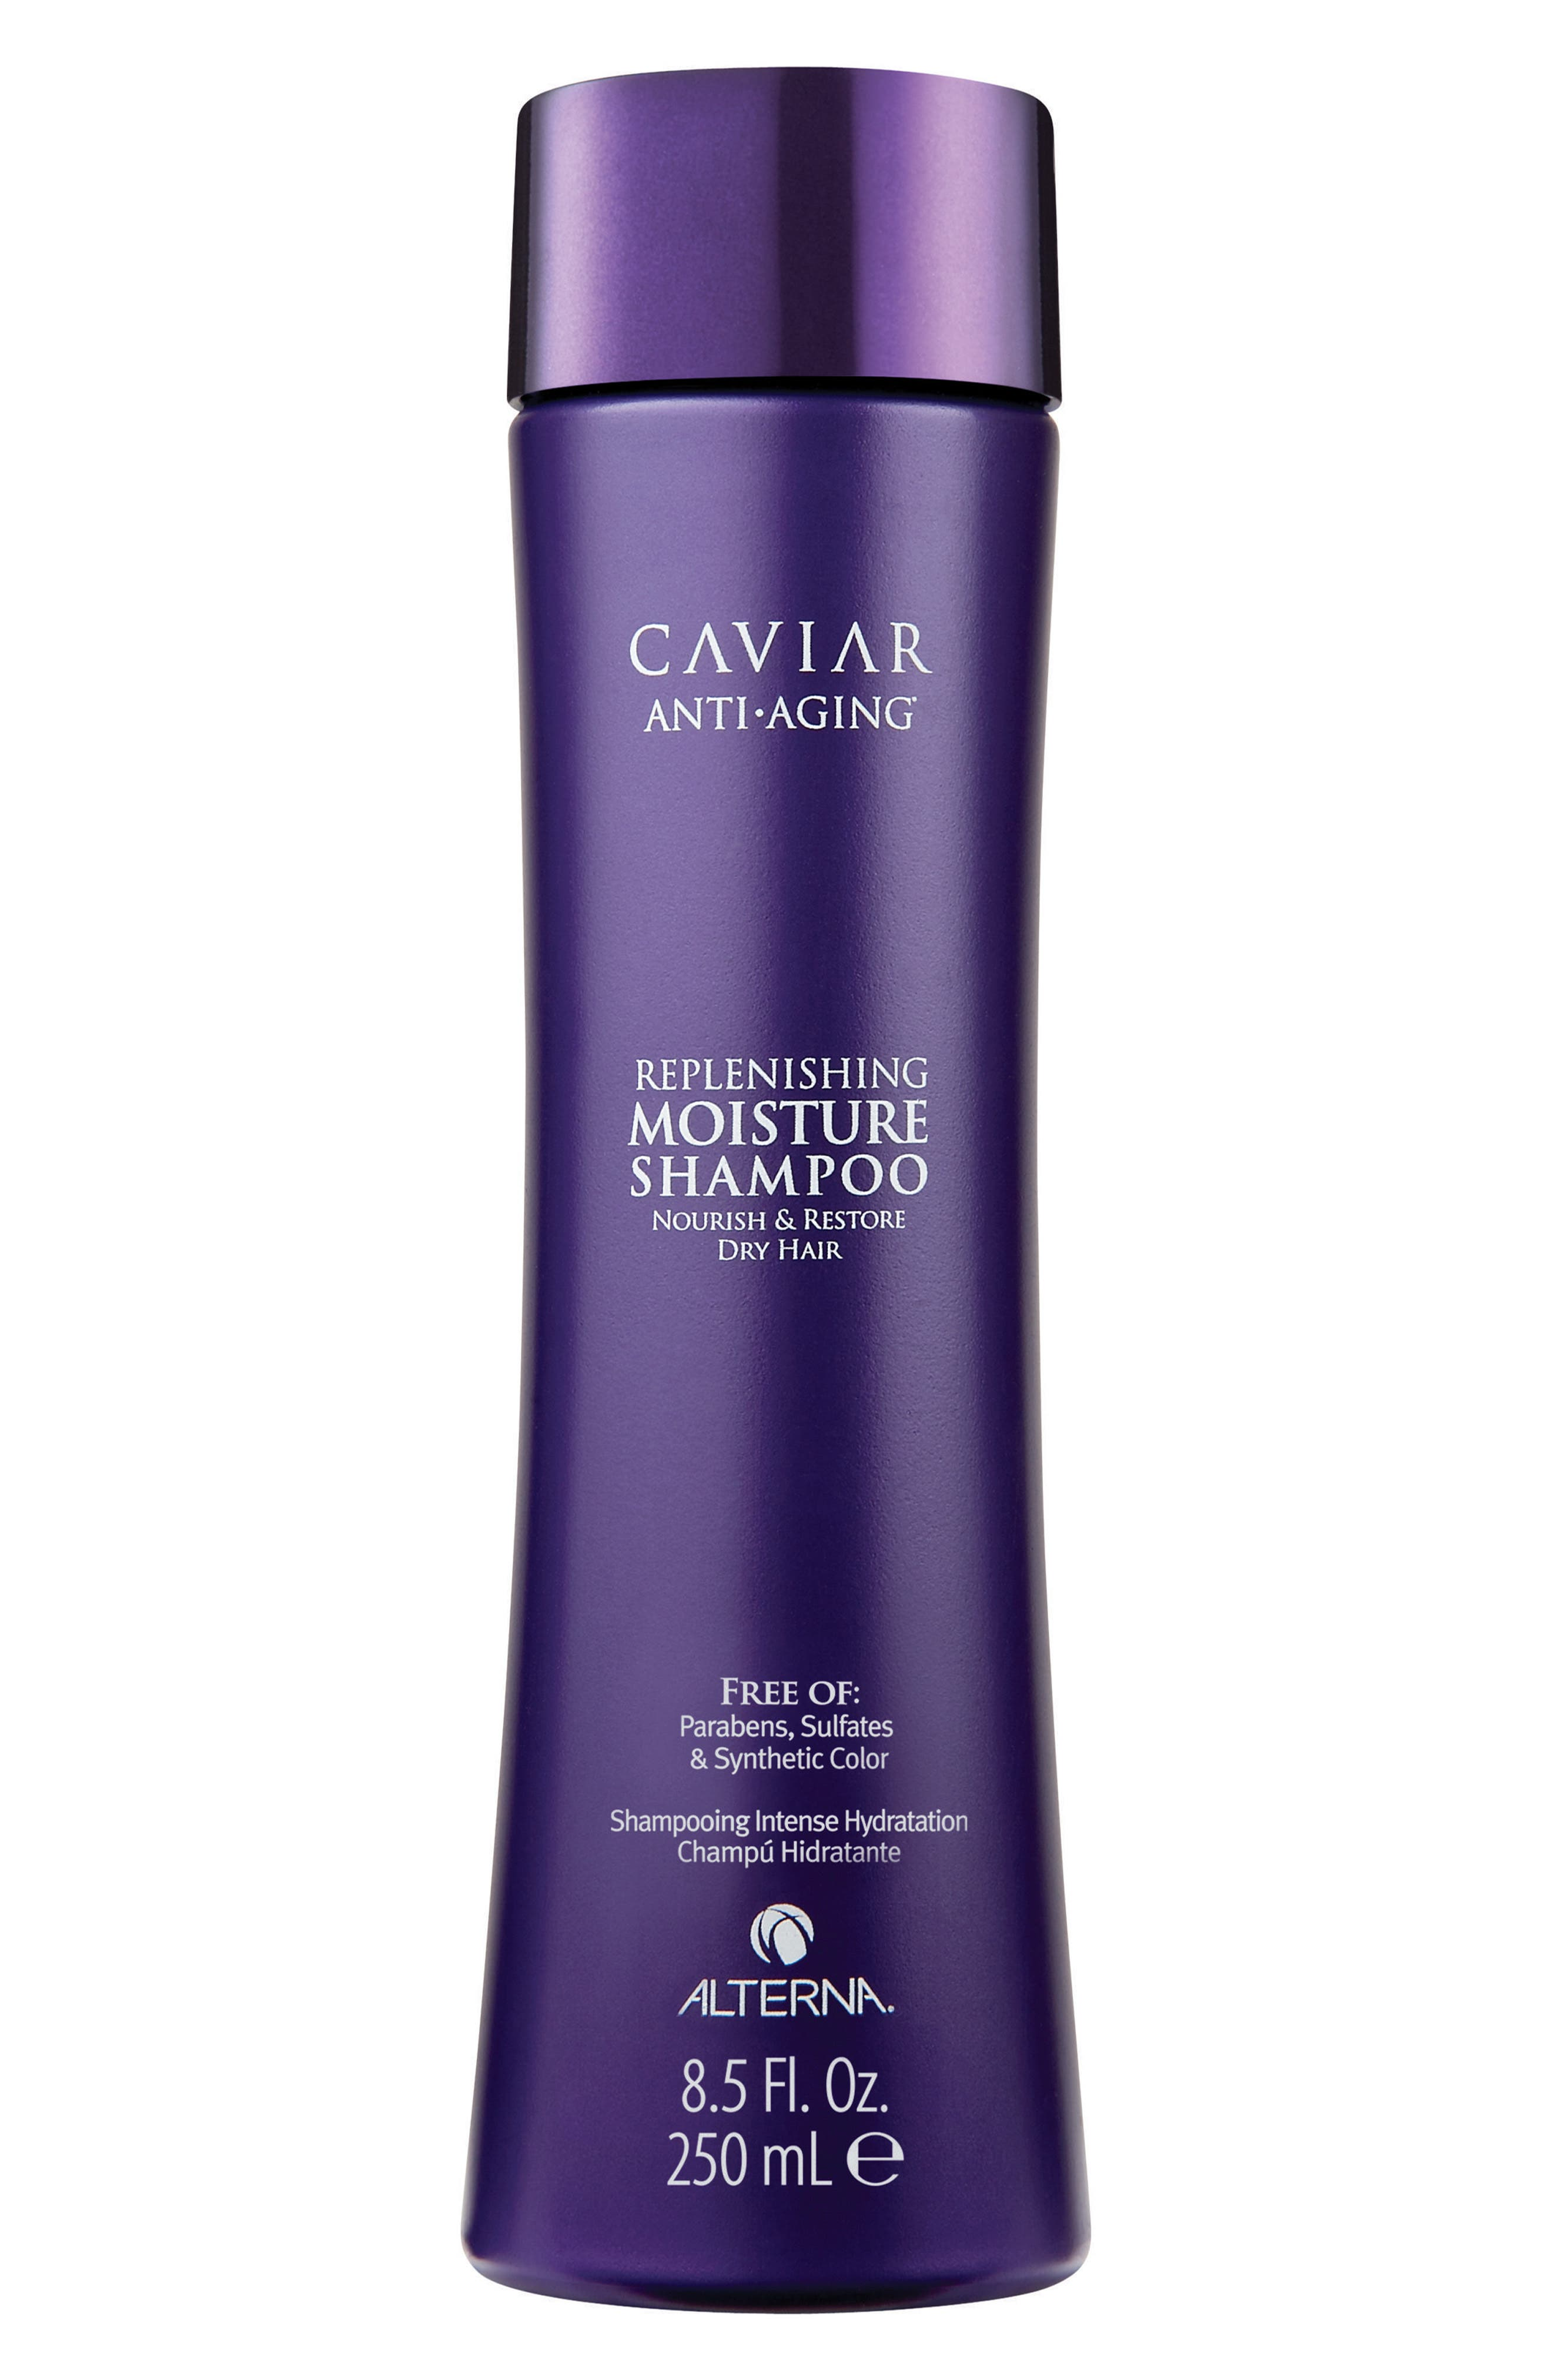 ALTERNA® Caviar Anti-Aging Replenishing Moisture Shampoo